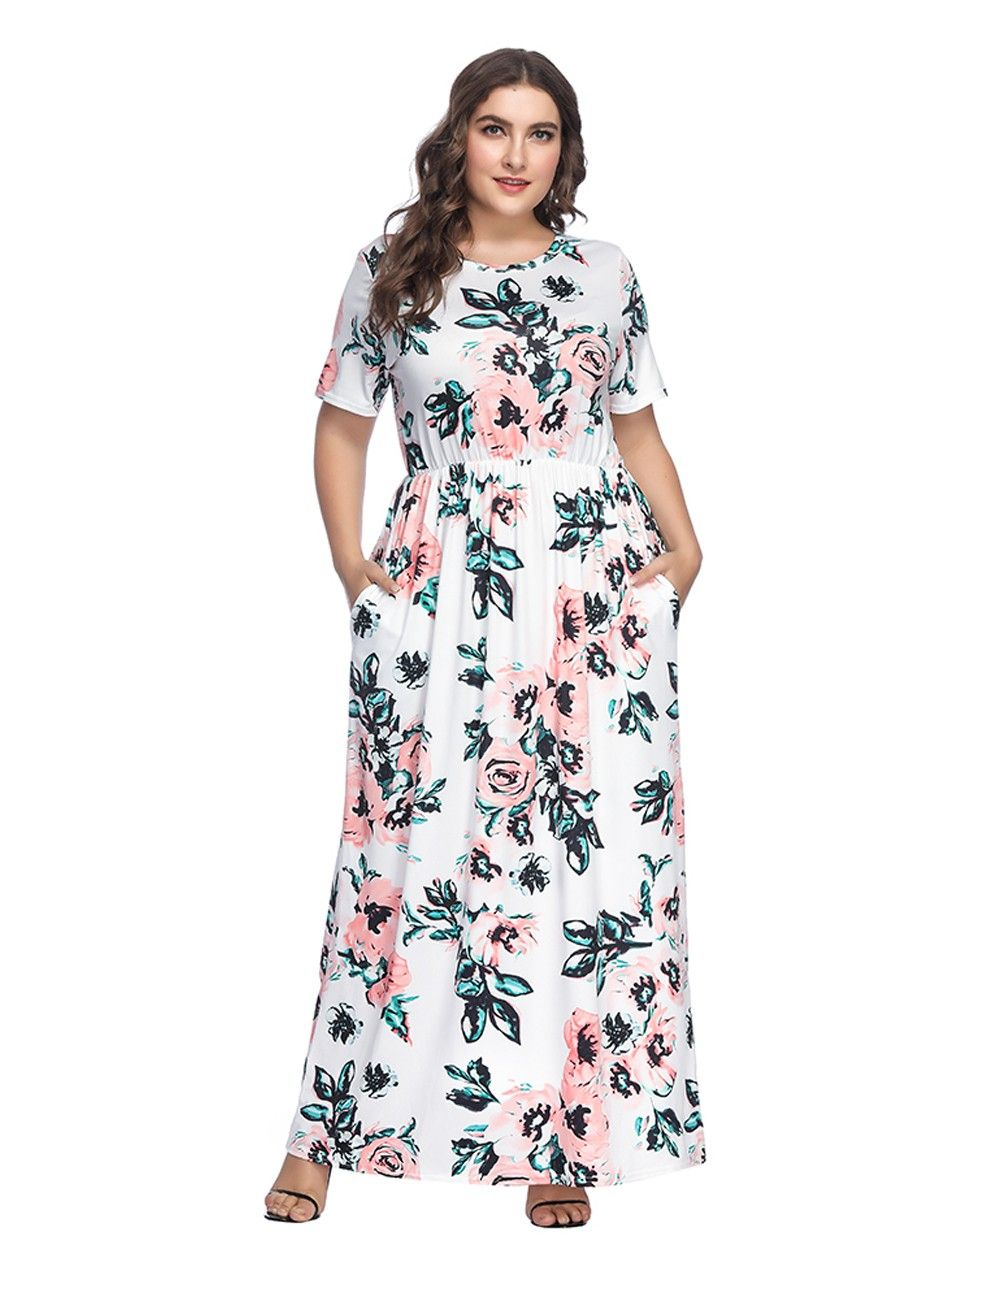 Fitted White Flower Pattern Large Maxi Dress Short Sleeves Comfort